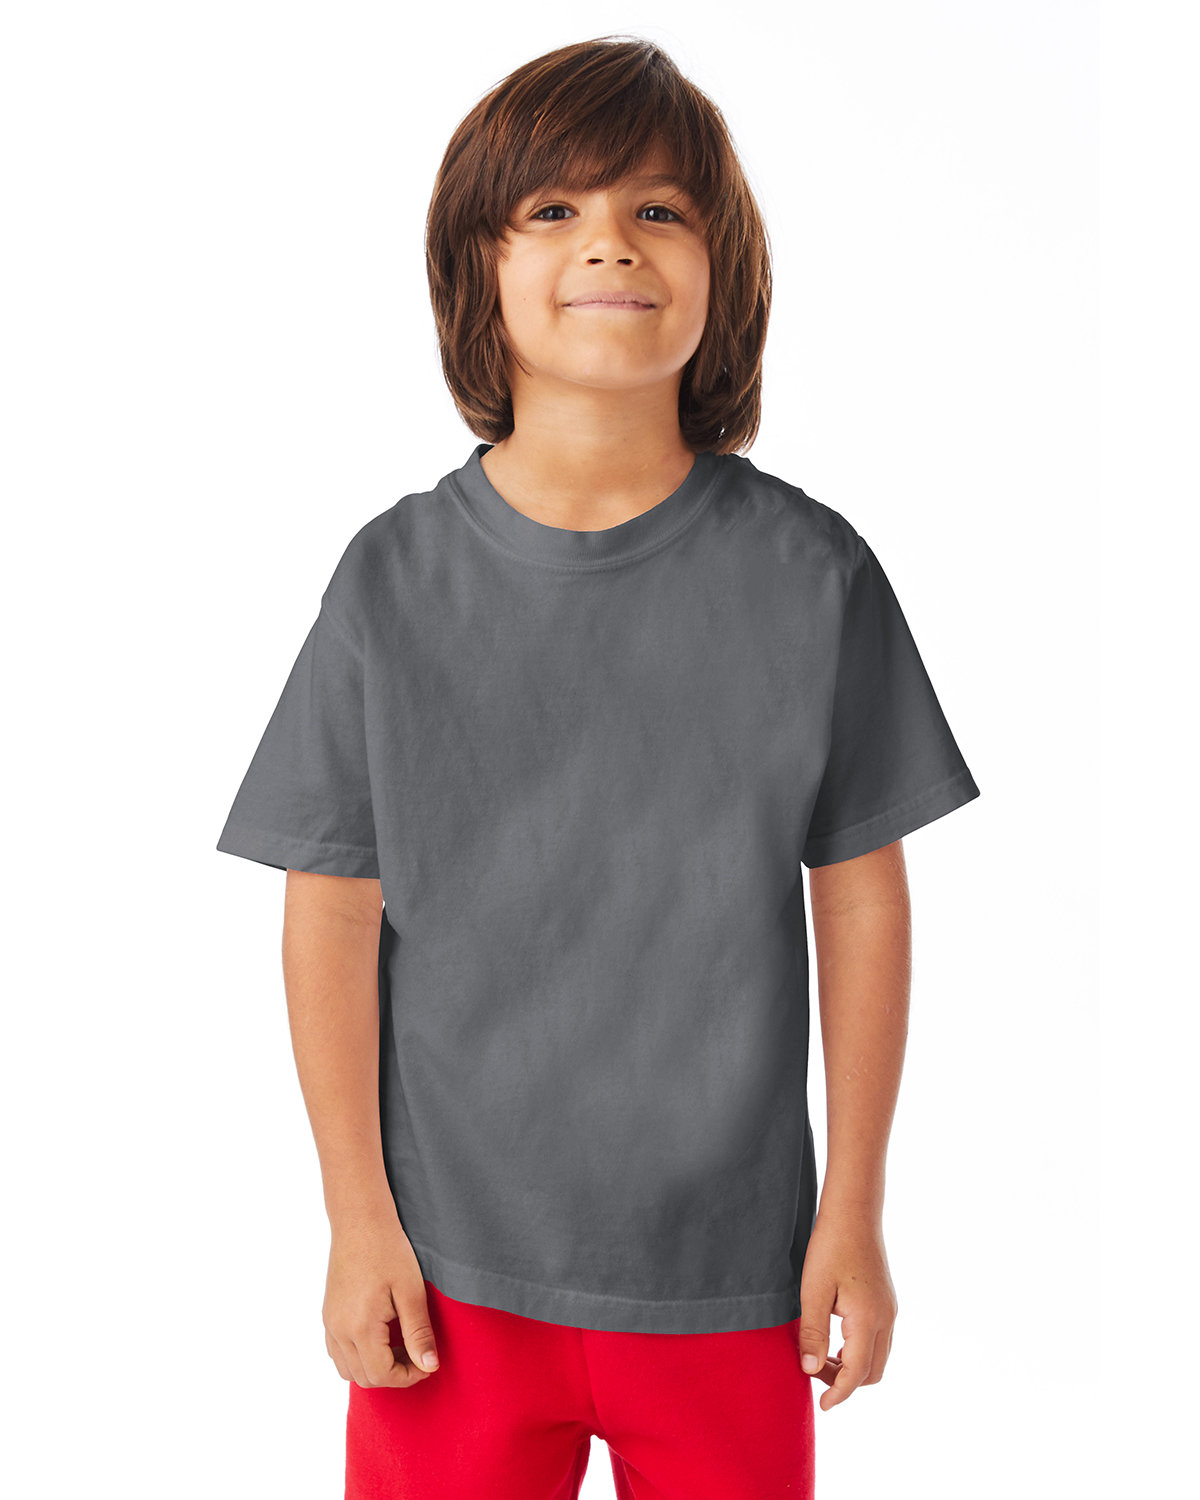 ComfortWash by Hanes Youth Garment-Dyed T-Shirt CONCRETE GRAY